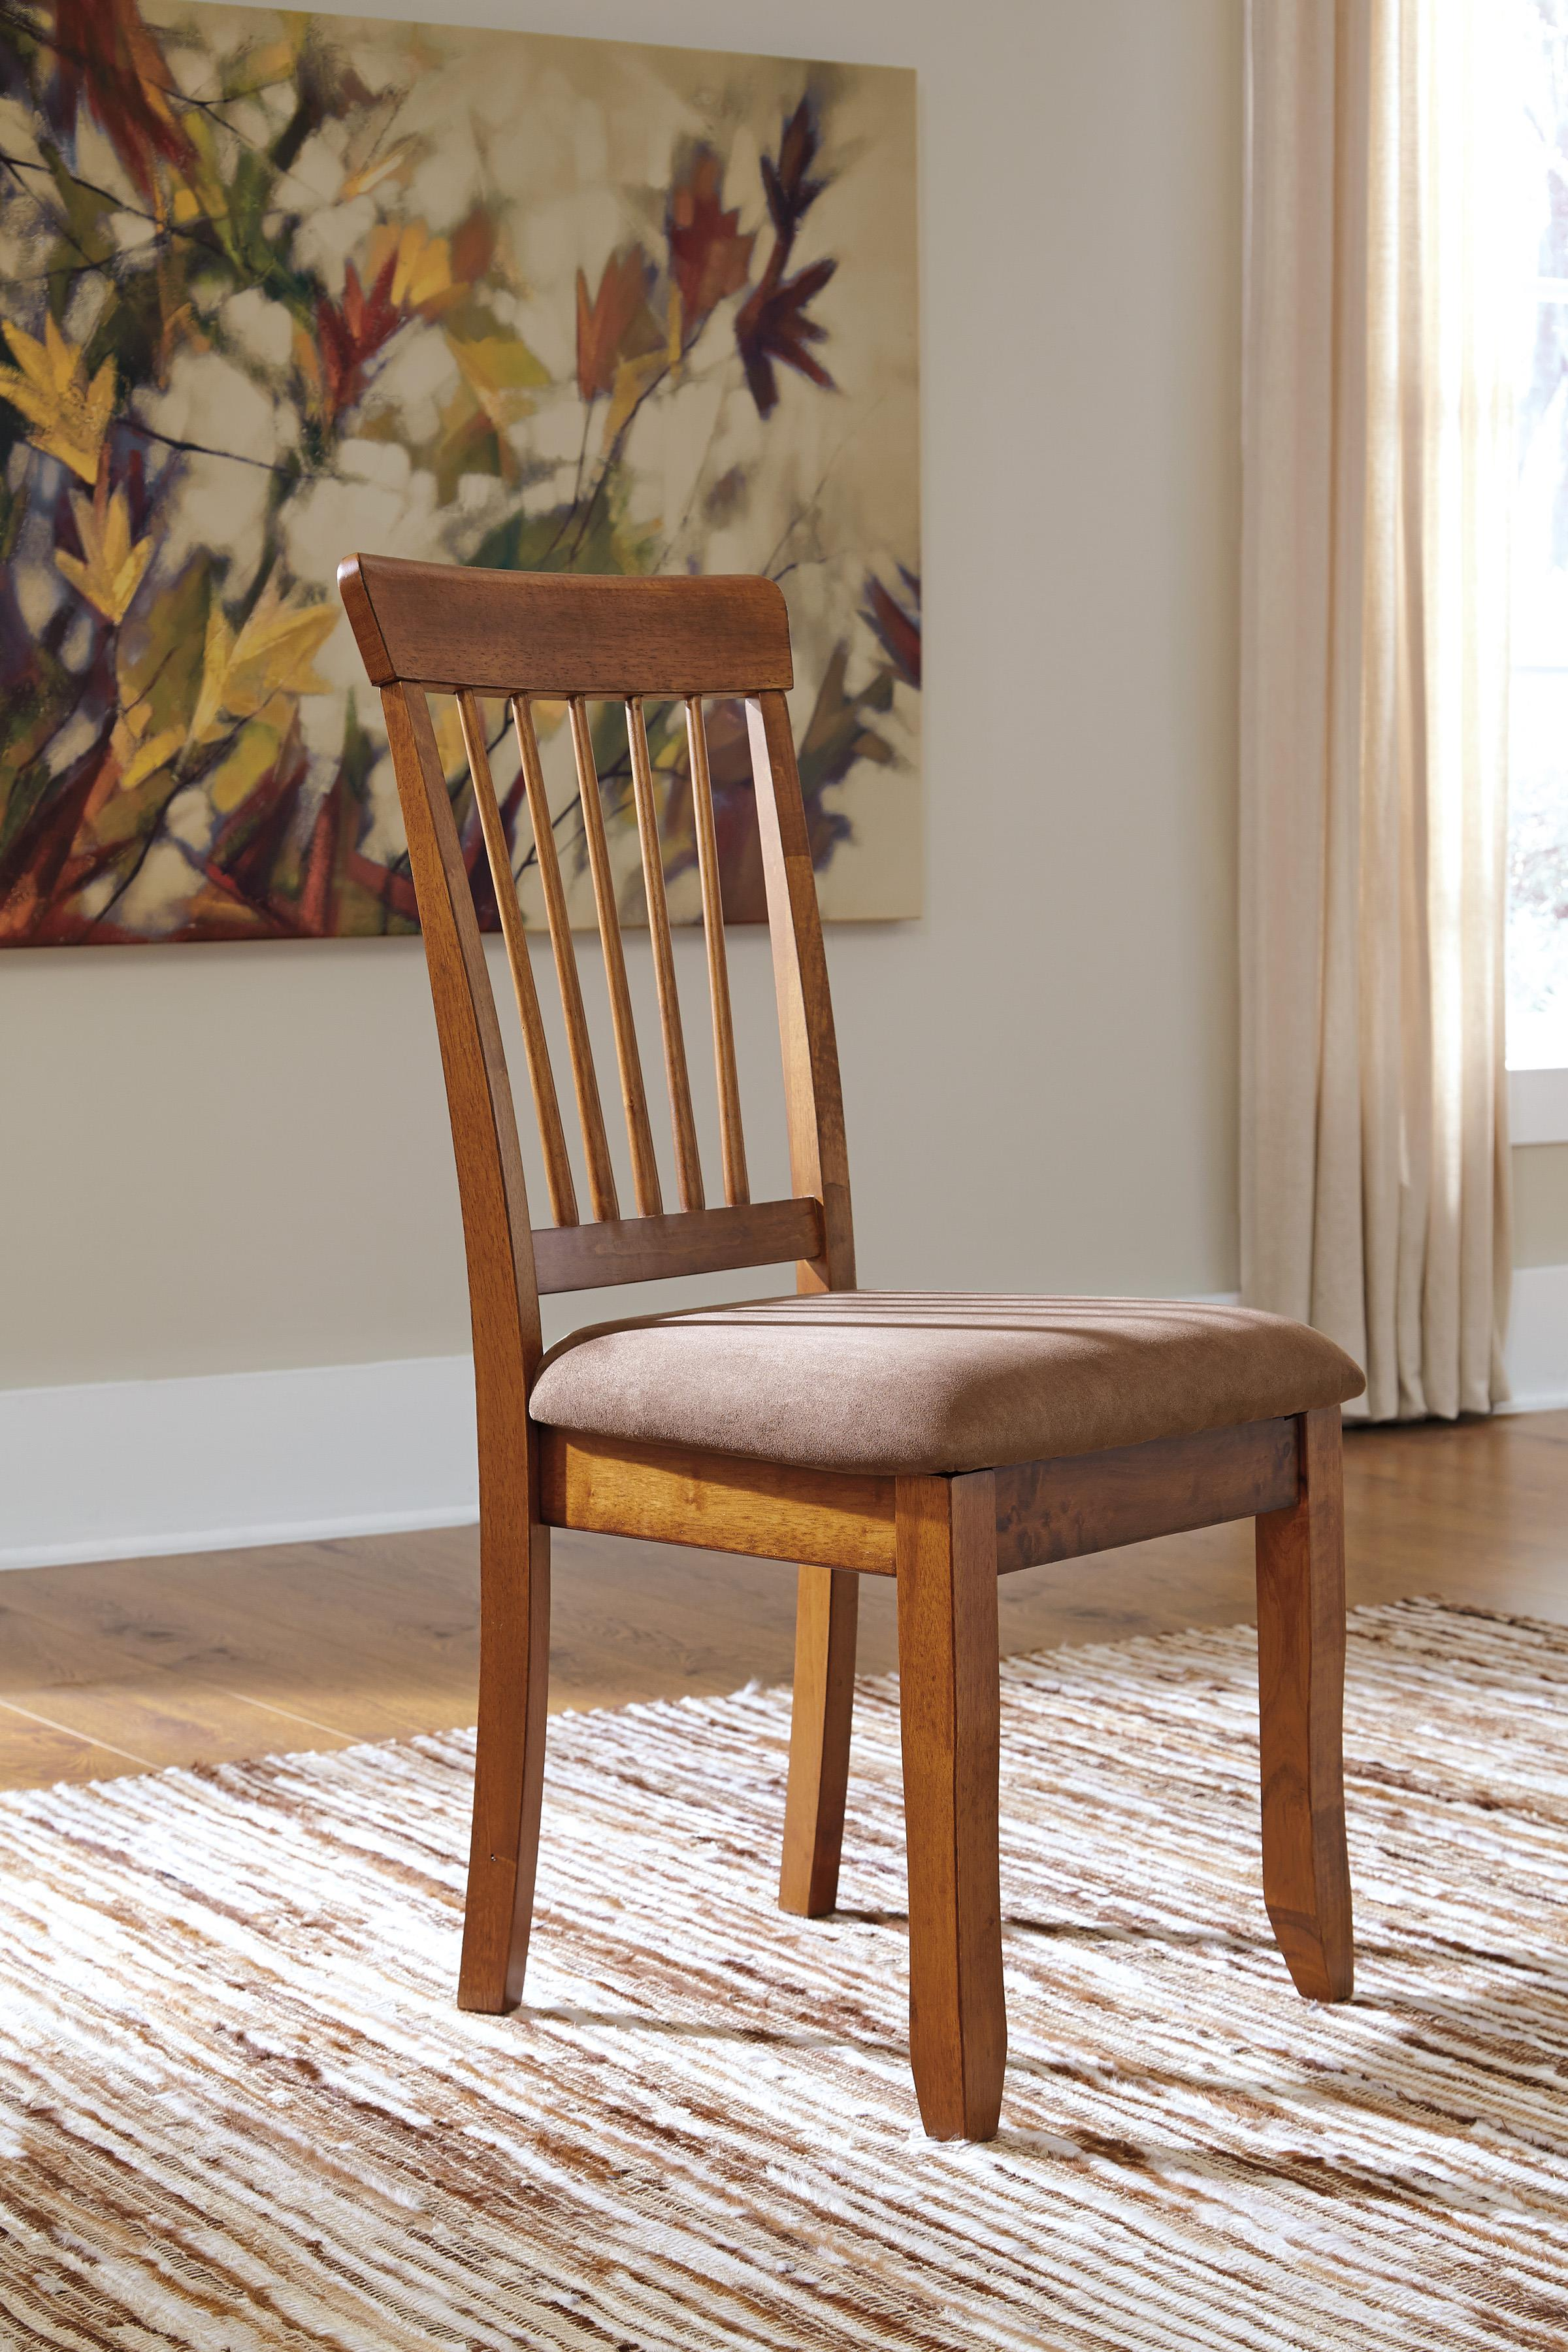 Ashley Furniture Berringer D199-01 Hickory Stained Side